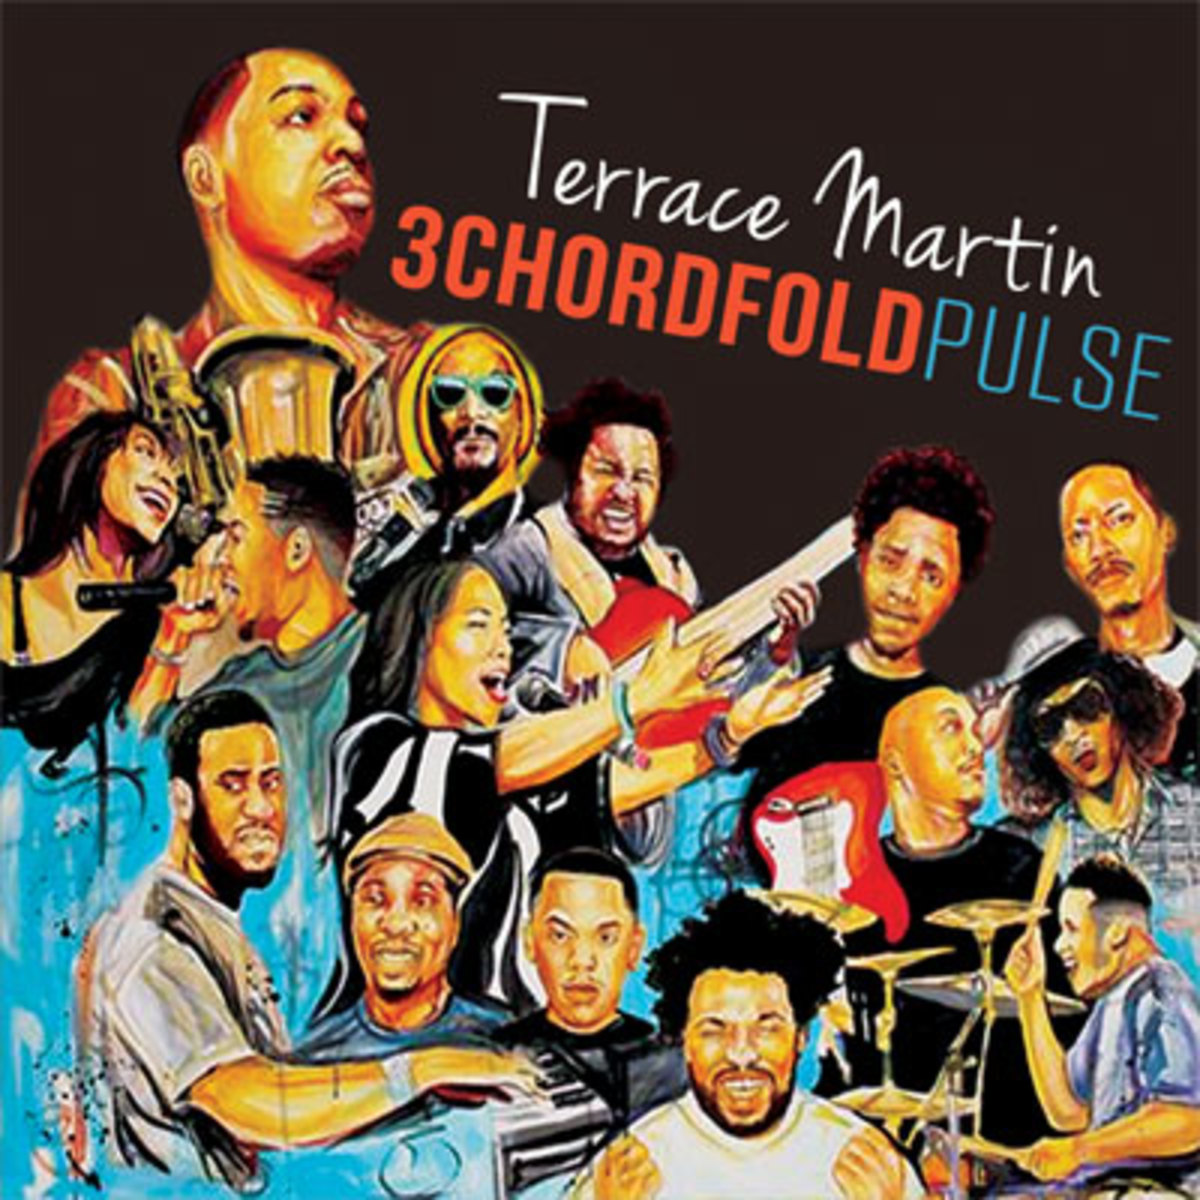 terracemartin-3chordpulse.jpg